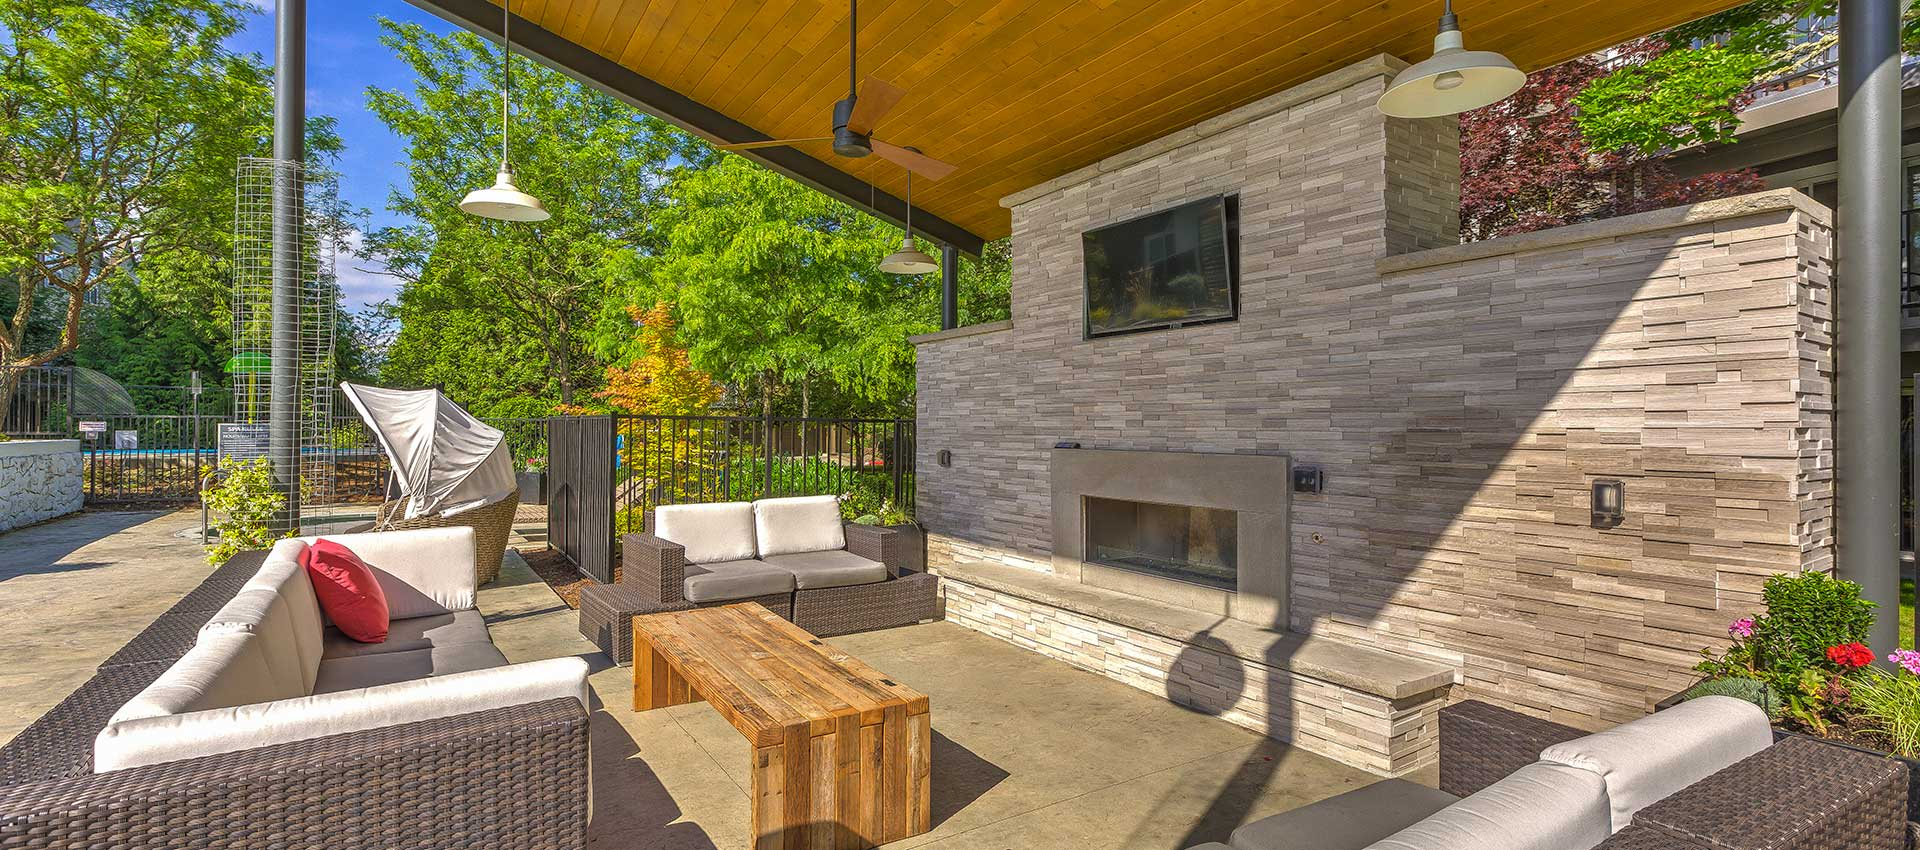 Poolside pavilion with fireside seating at Centro Apartment Homes